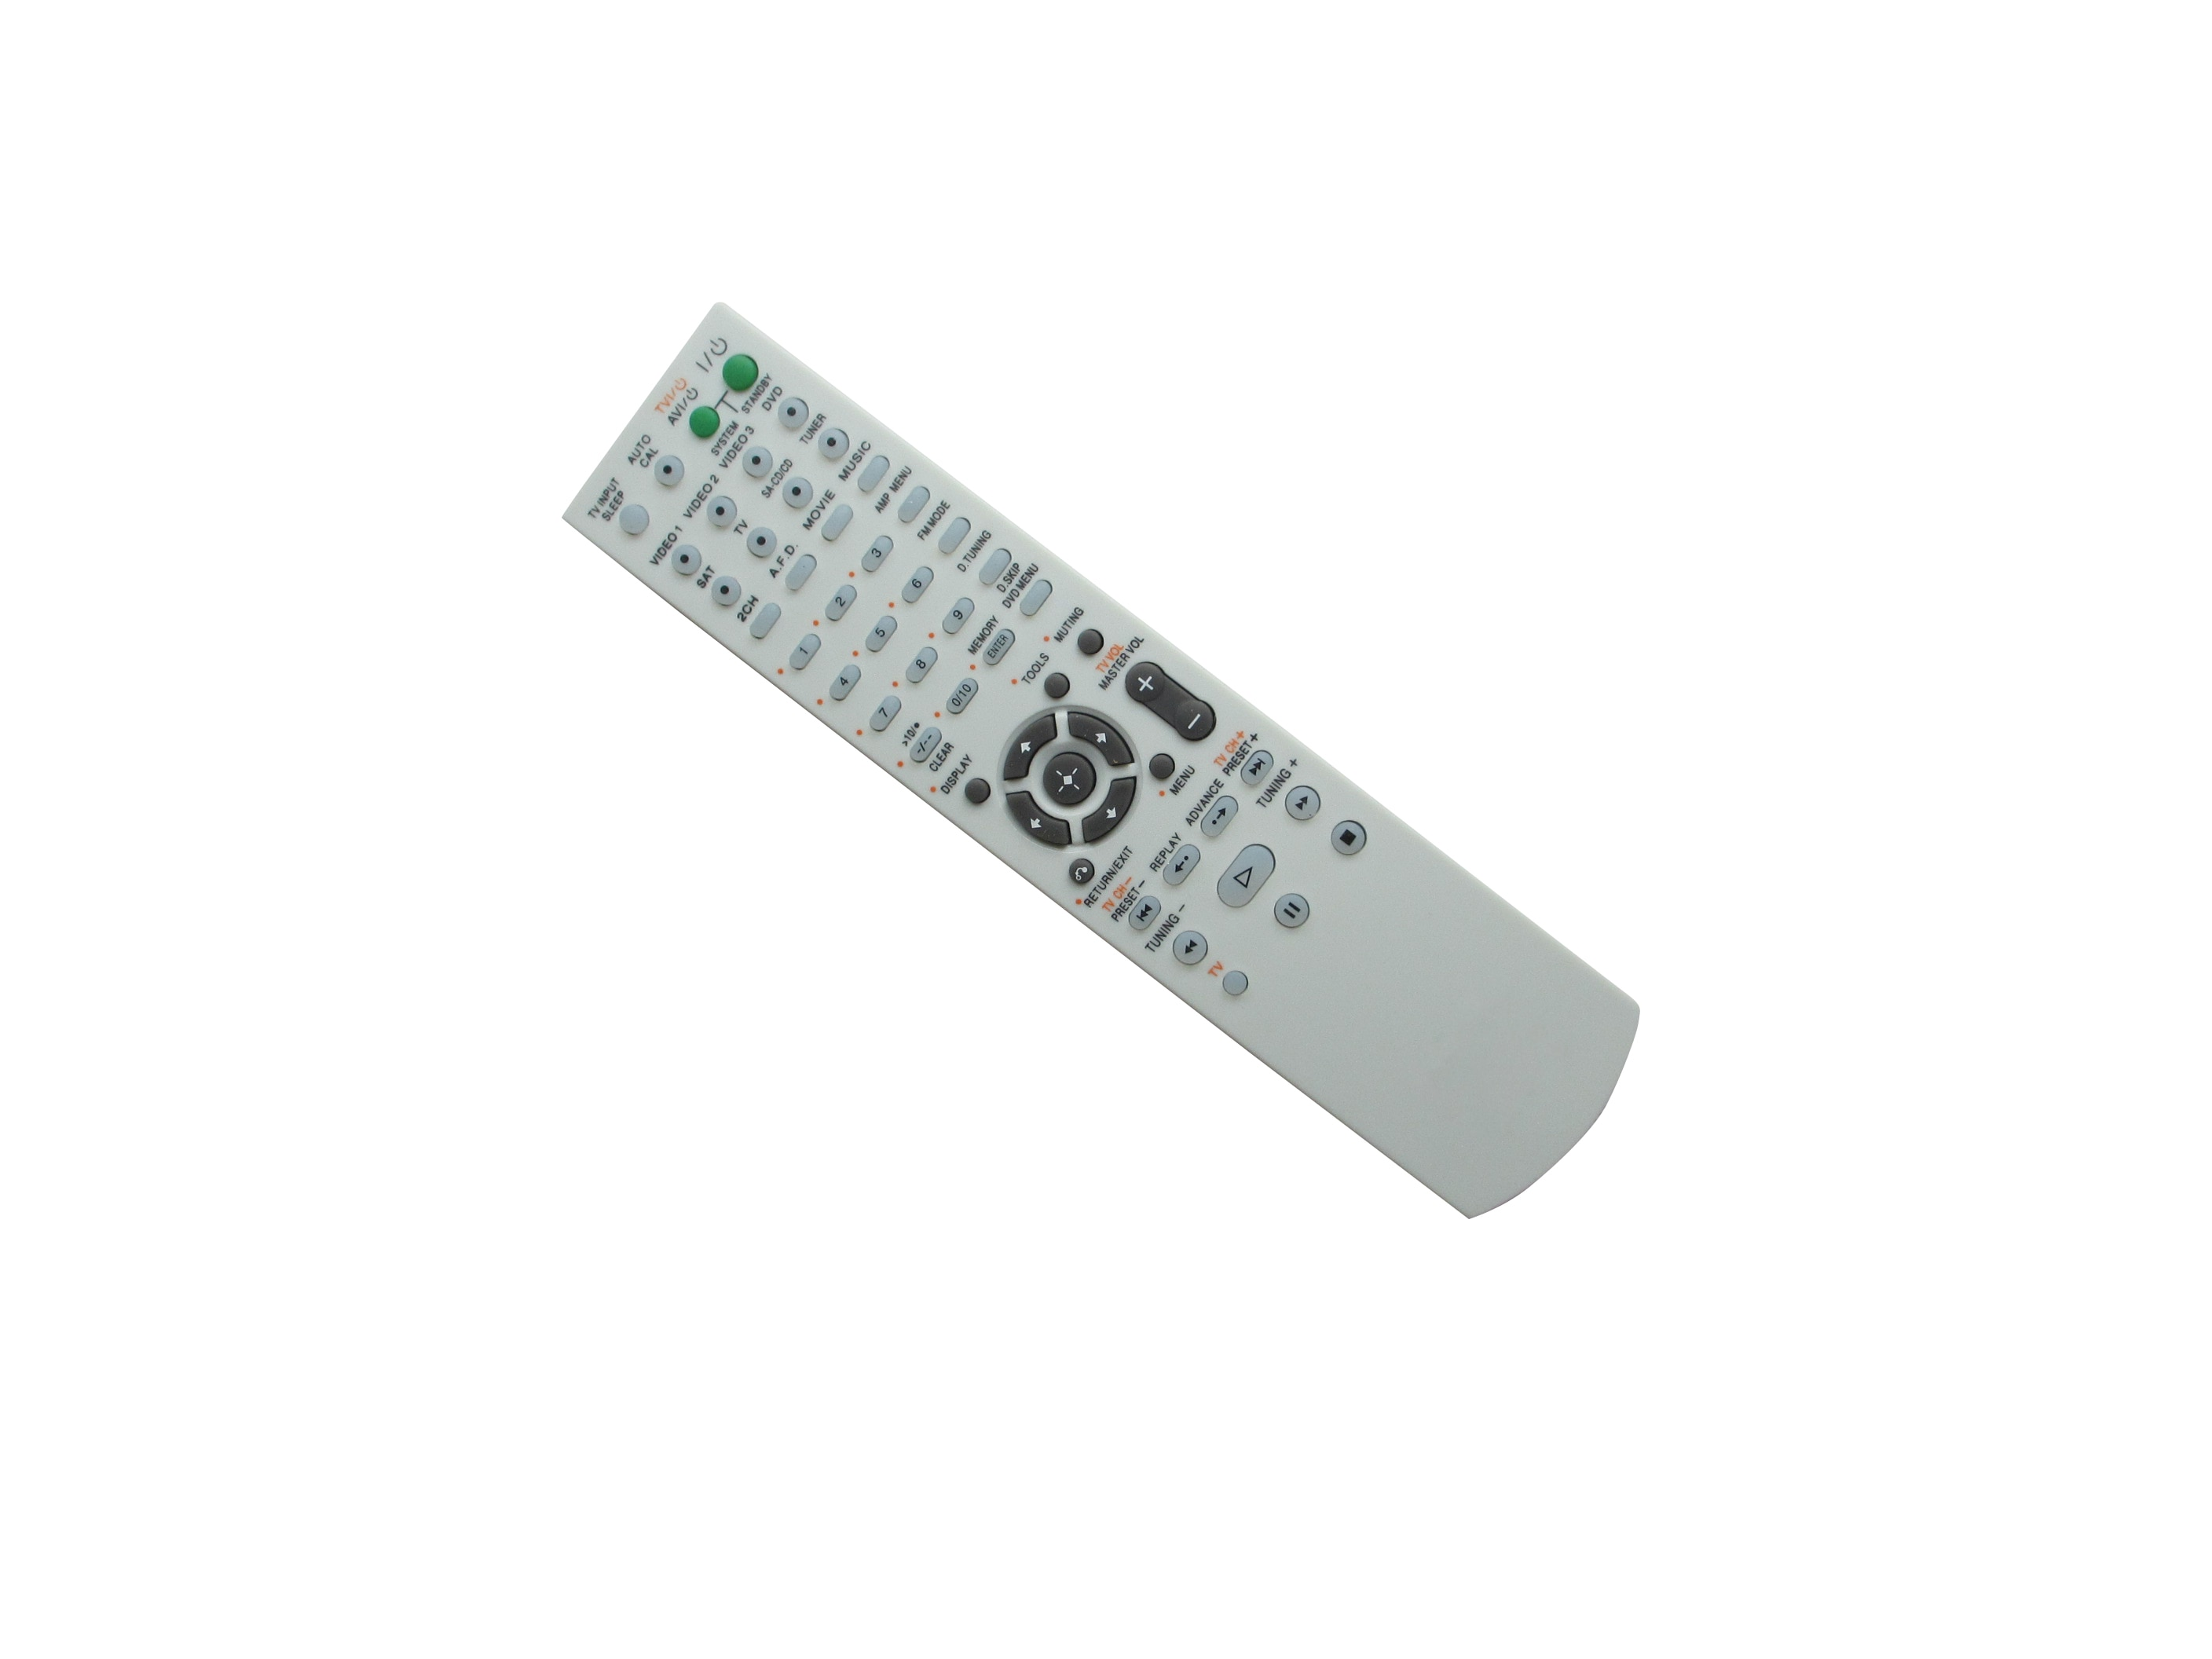 Control remoto para Sony SS-CNP680 RM-AAU017 RM-AAU002 SS-MSP67R HT-7200DH HT-SS500 HT-DDW670T HT-SS600...